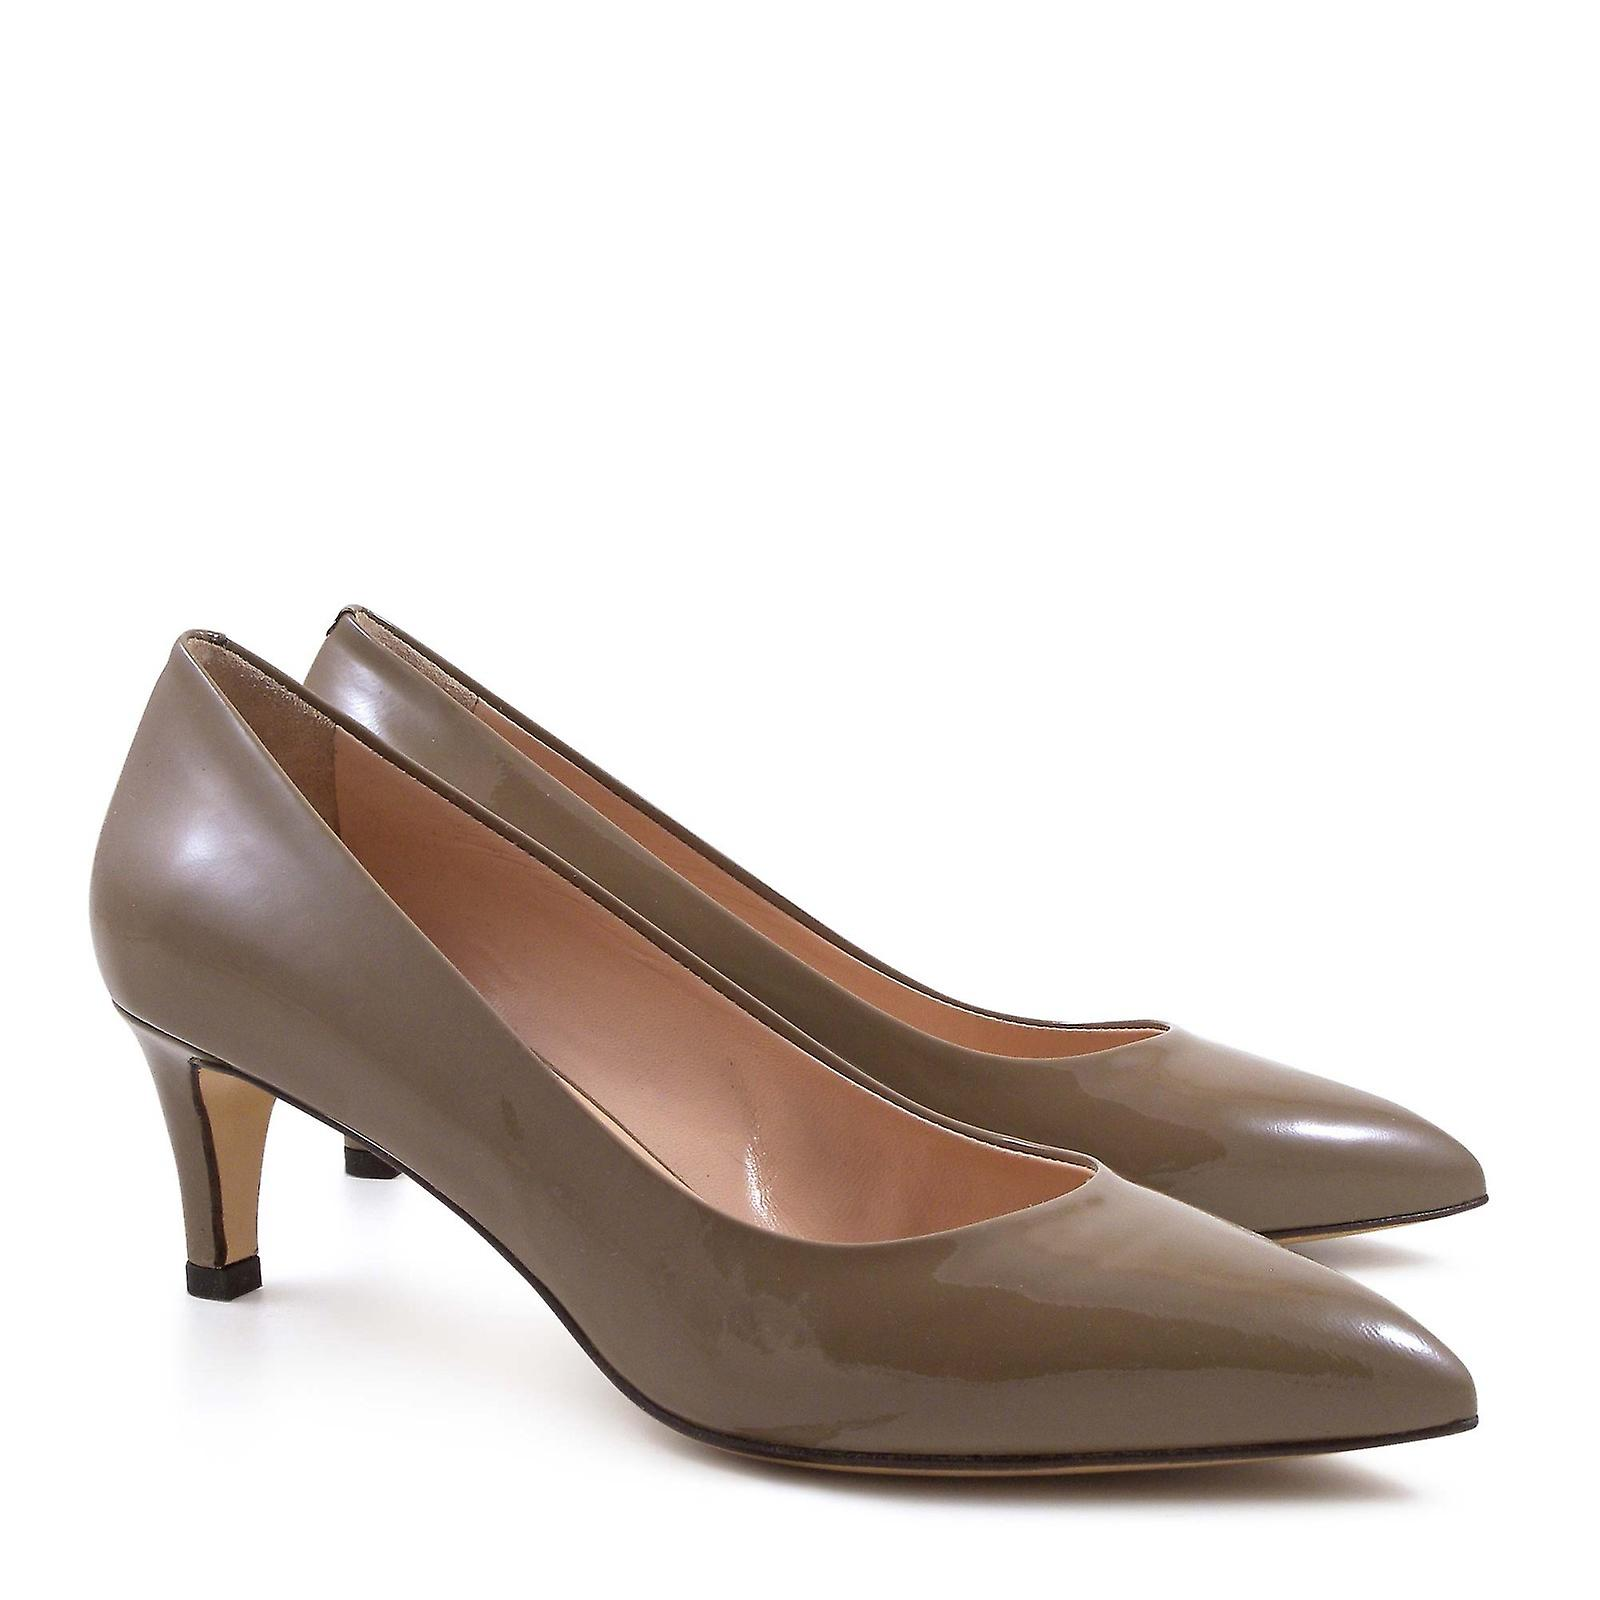 Handmade hazelnut patent leather pumps heels pumps leather shoes 292307